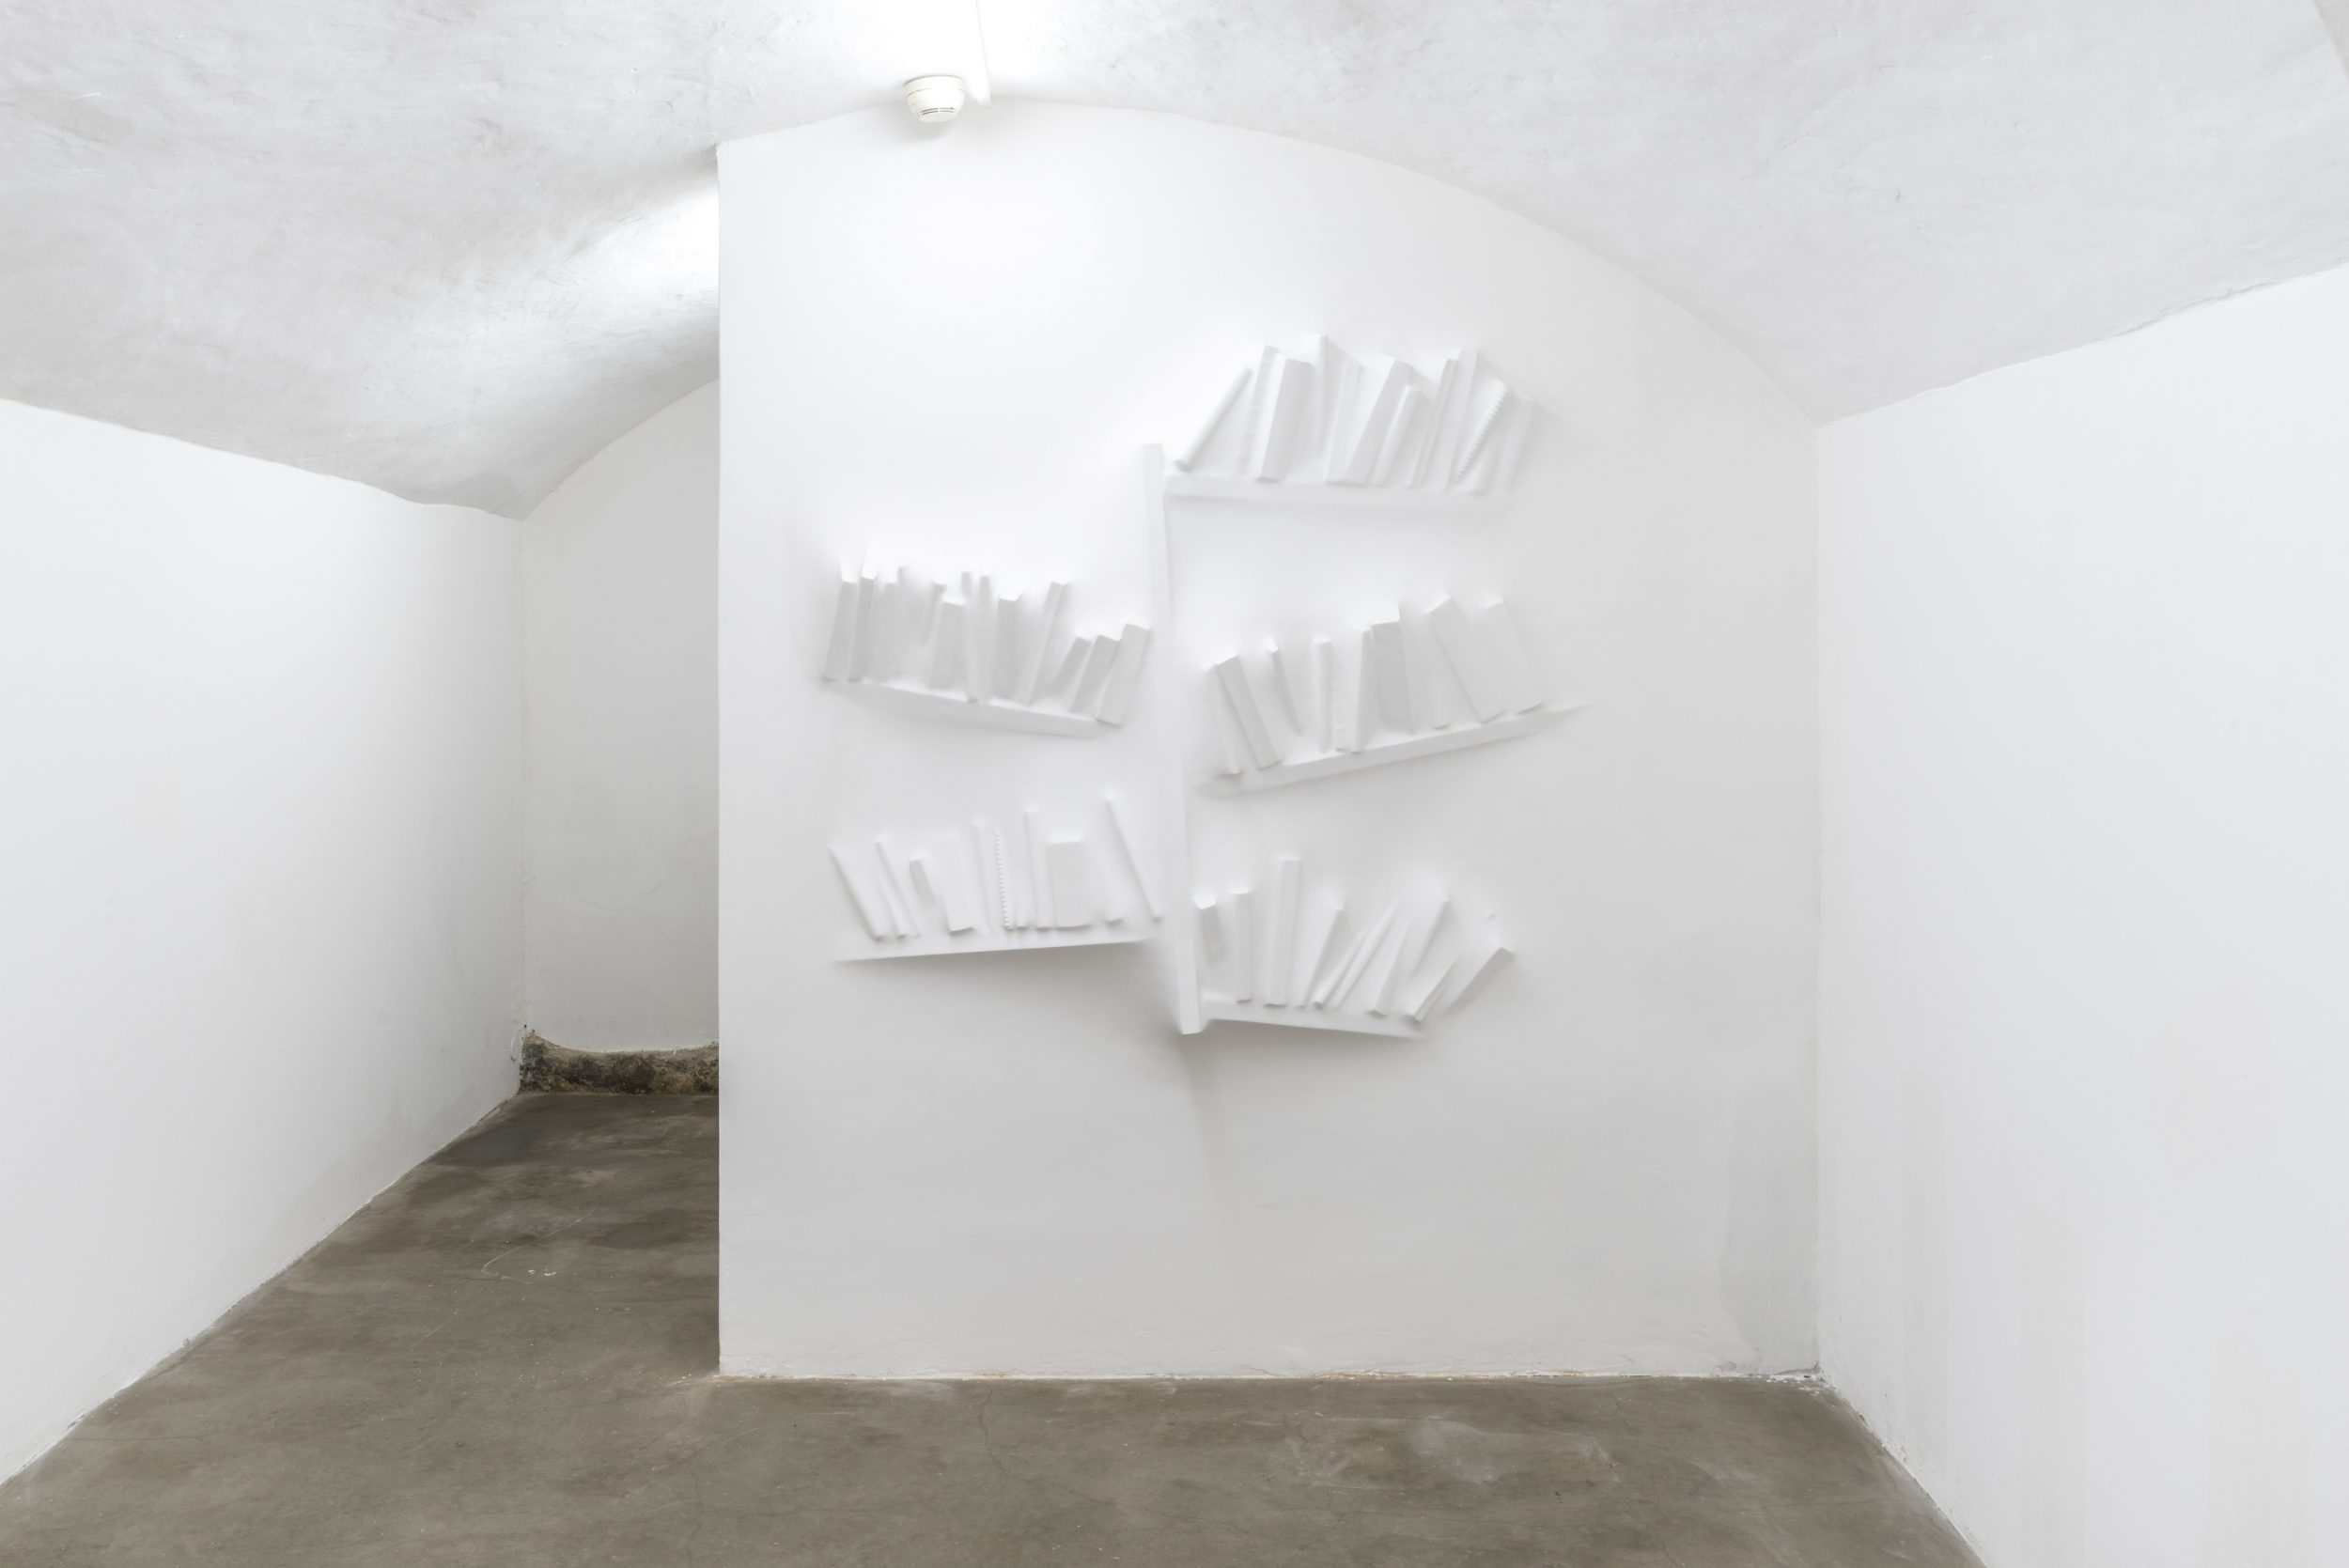 Gaps (Bookshelf) III, 2018, polyester resin, wall paint, 120 x 120 x 17 cm